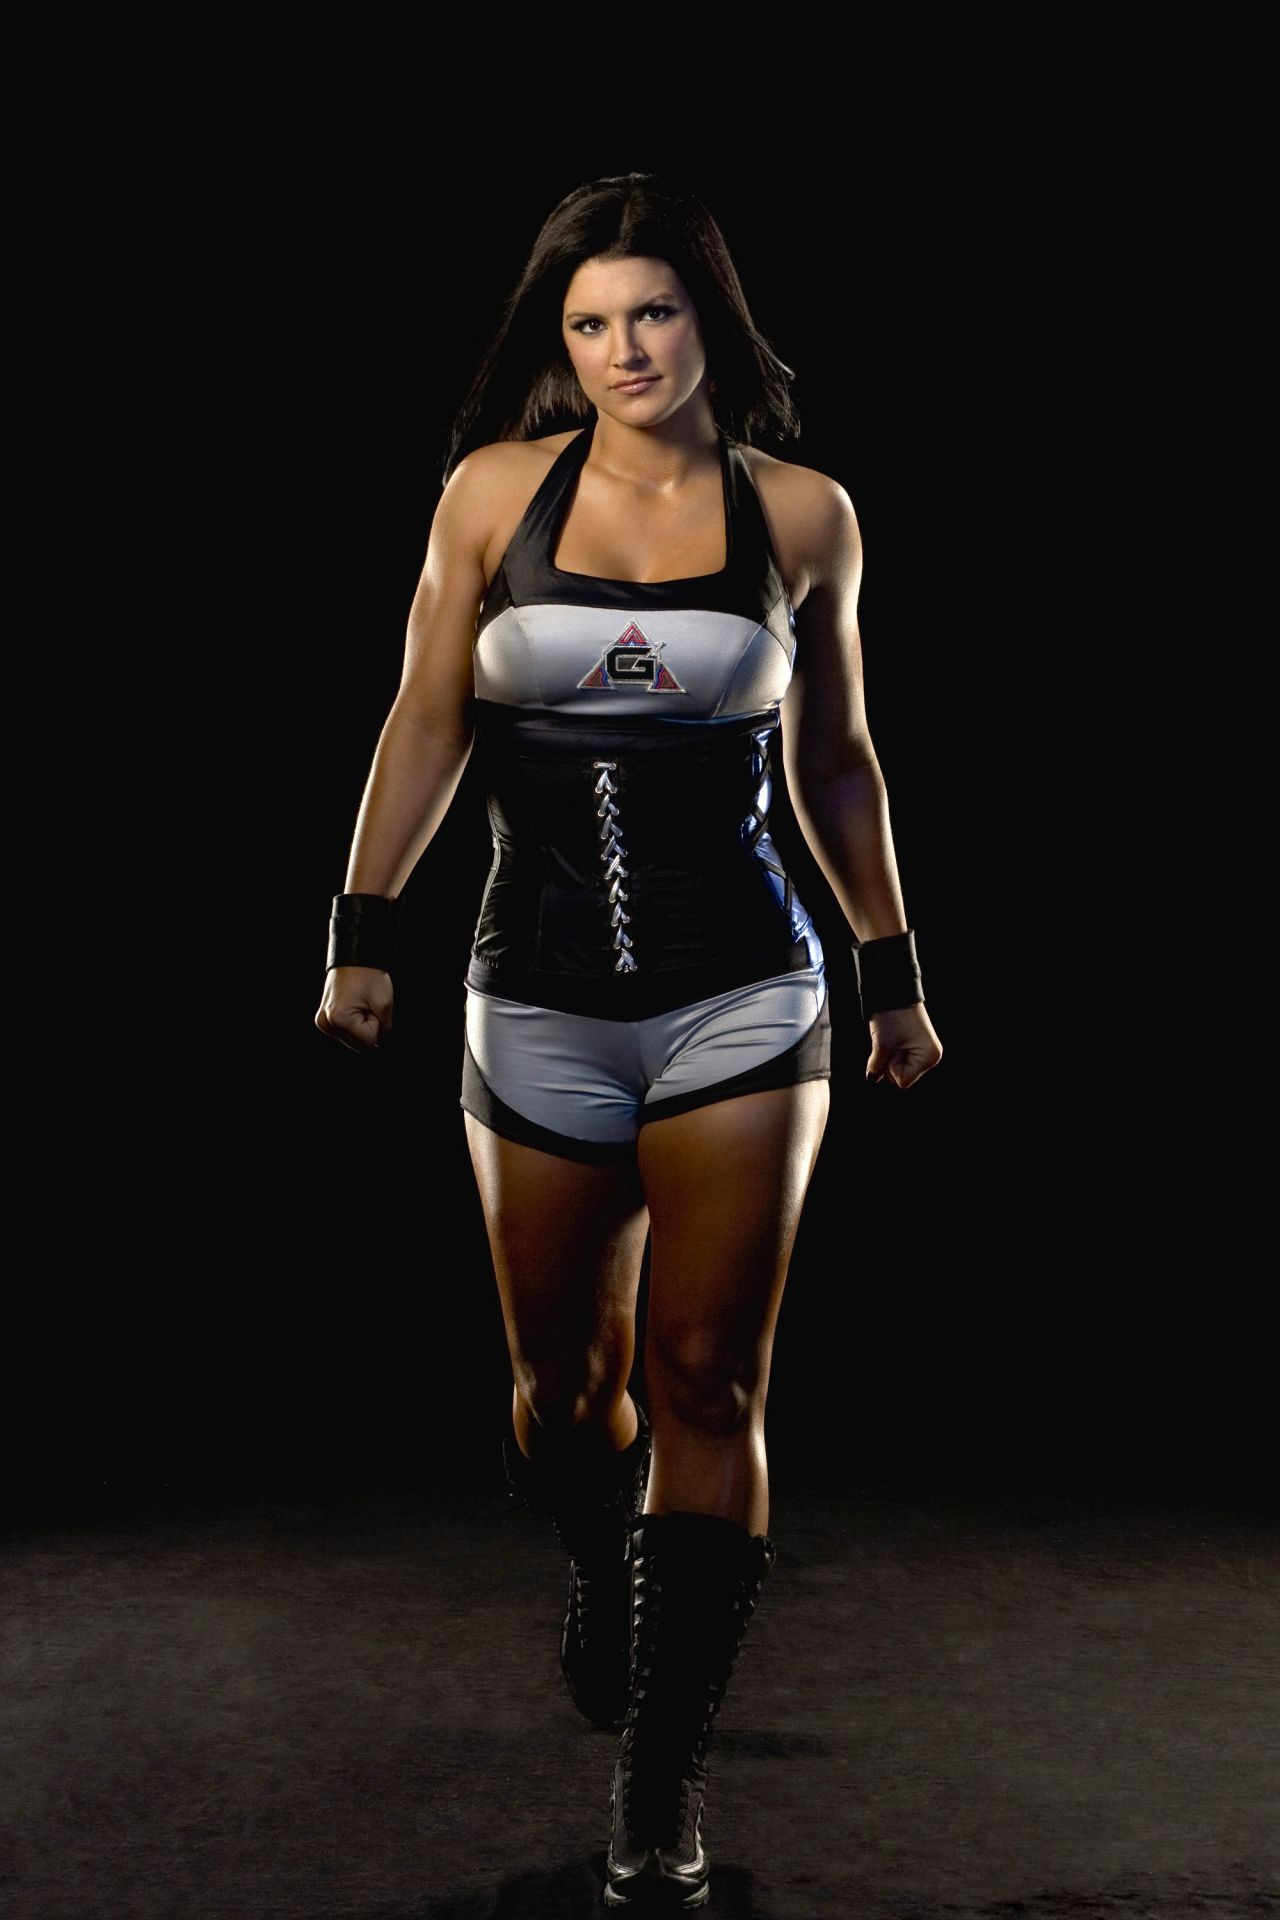 Pin By Aedrien Macayle On Gina Carano Should Ve Been Wonder Woman Fact Female Mma Fighters Mma Women Female Fighter